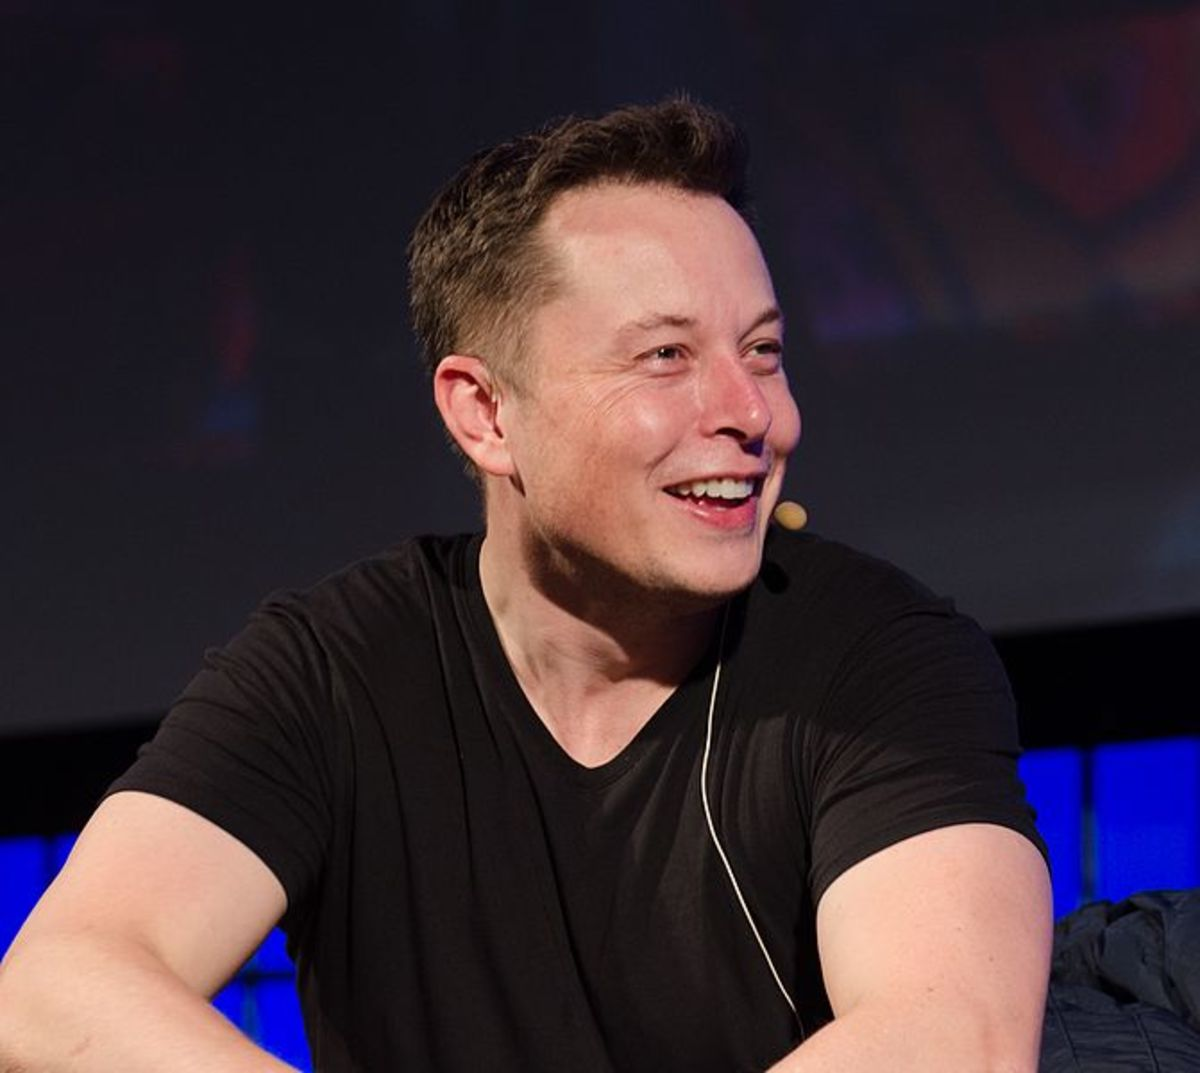 By Heisenberg Media (Flickr: Elon Musk - The Summit 2013) [CC BY 2.0], via Wikimedia Commons